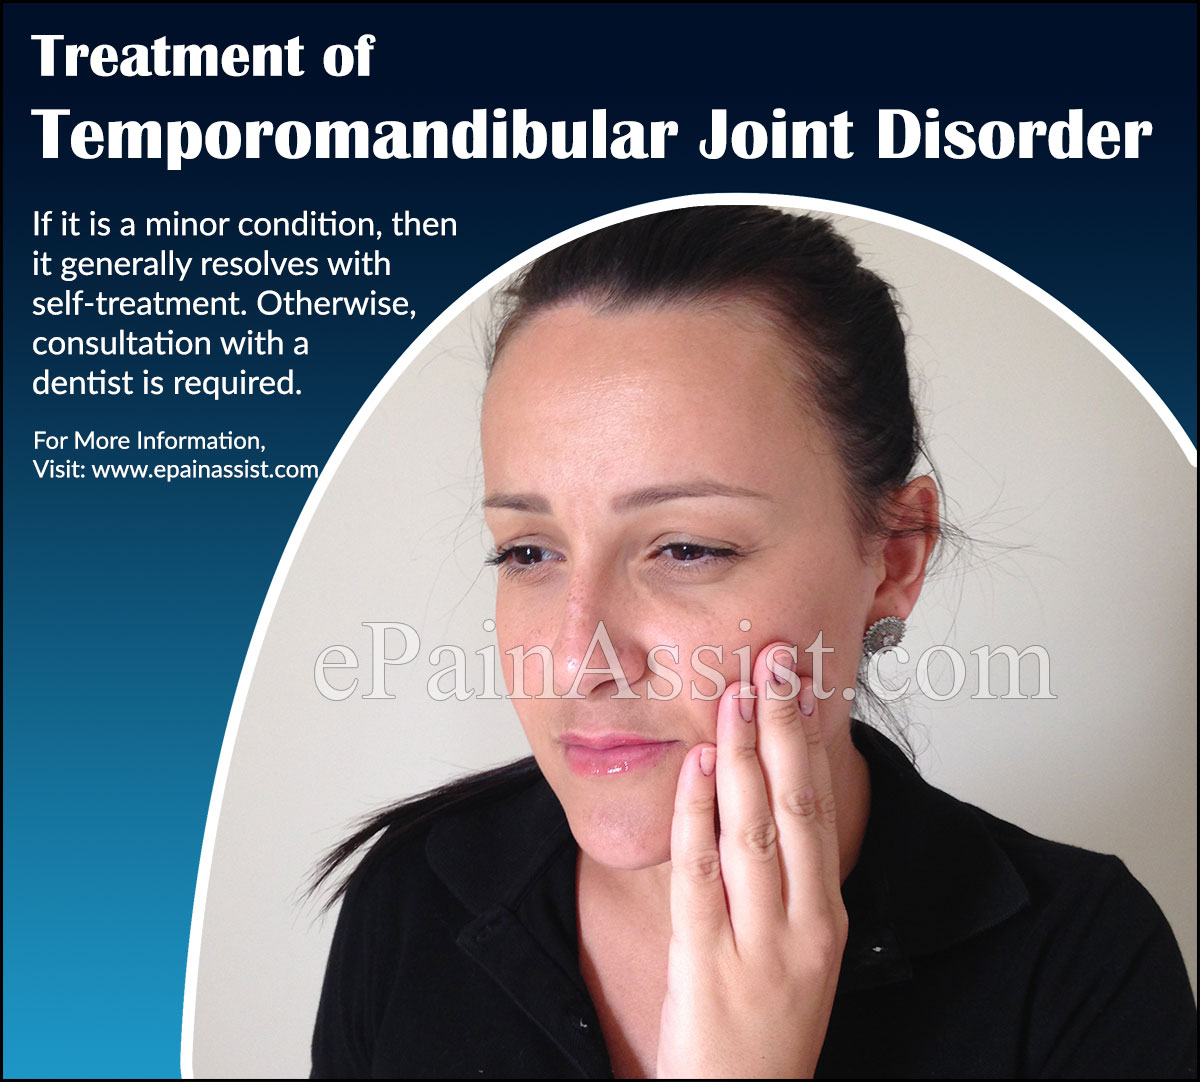 Treatment of Temporomandibular Joint Disorder (TMJ)